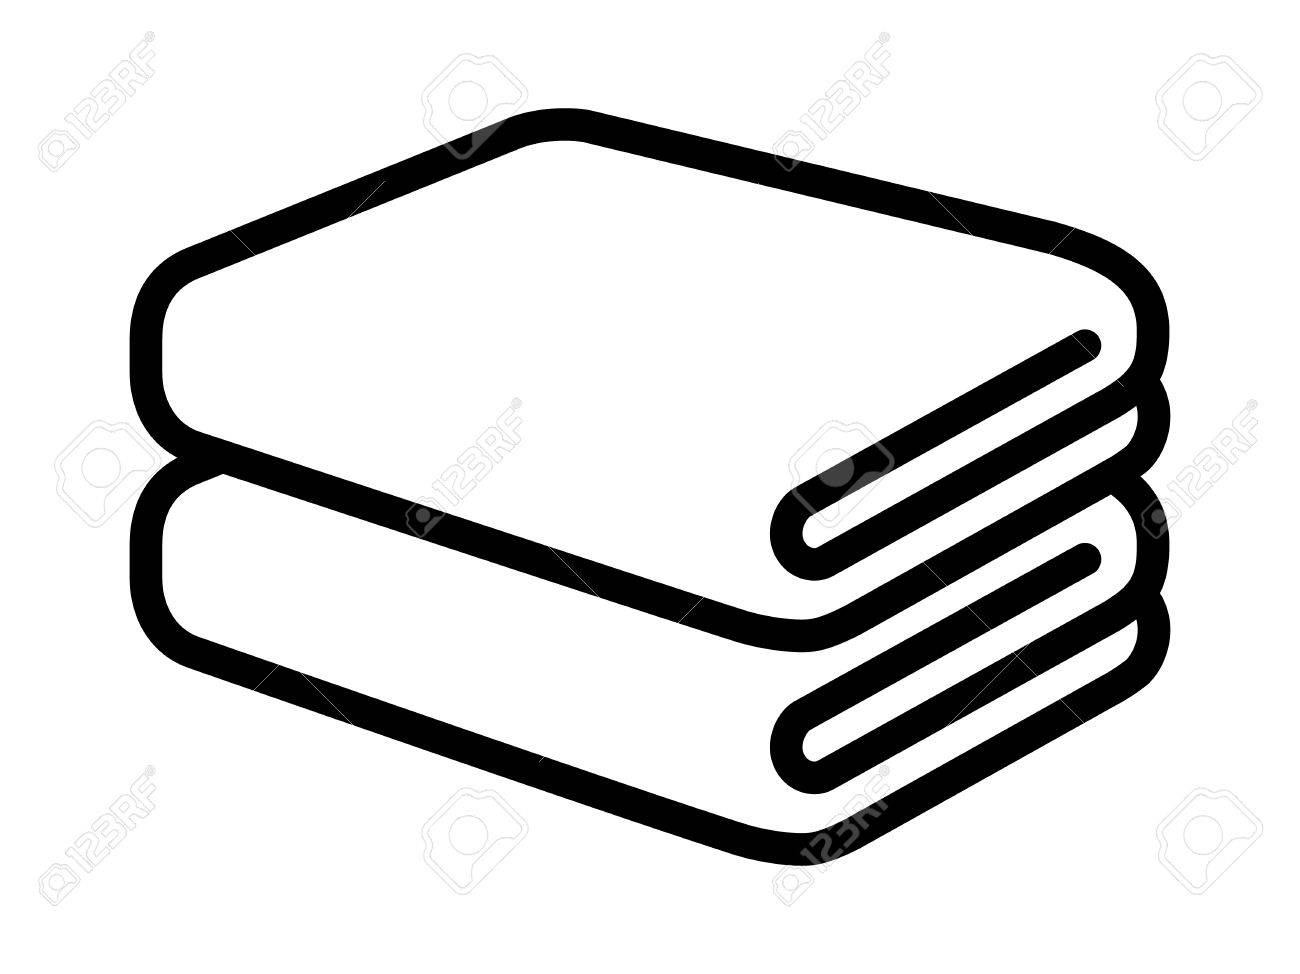 stack of folded bath towels or napkins line art for apps and rh 123rf com paper towel clip art towel pictures clip art